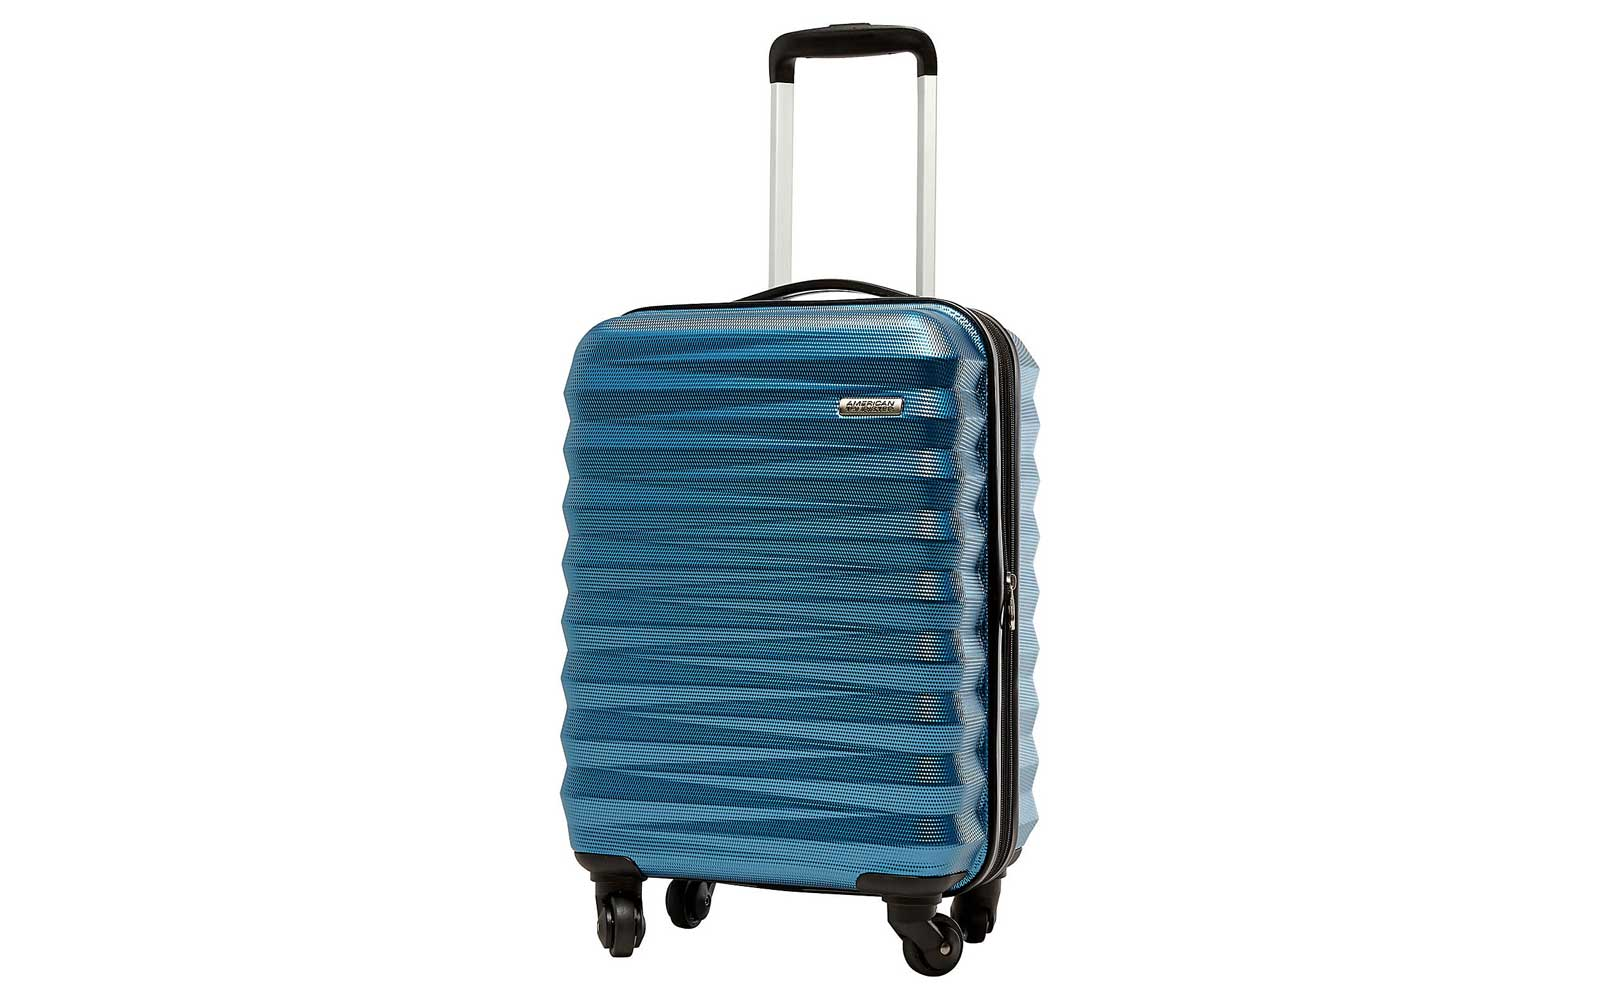 Blue American Tourister Hardside Carry-on Suitcase